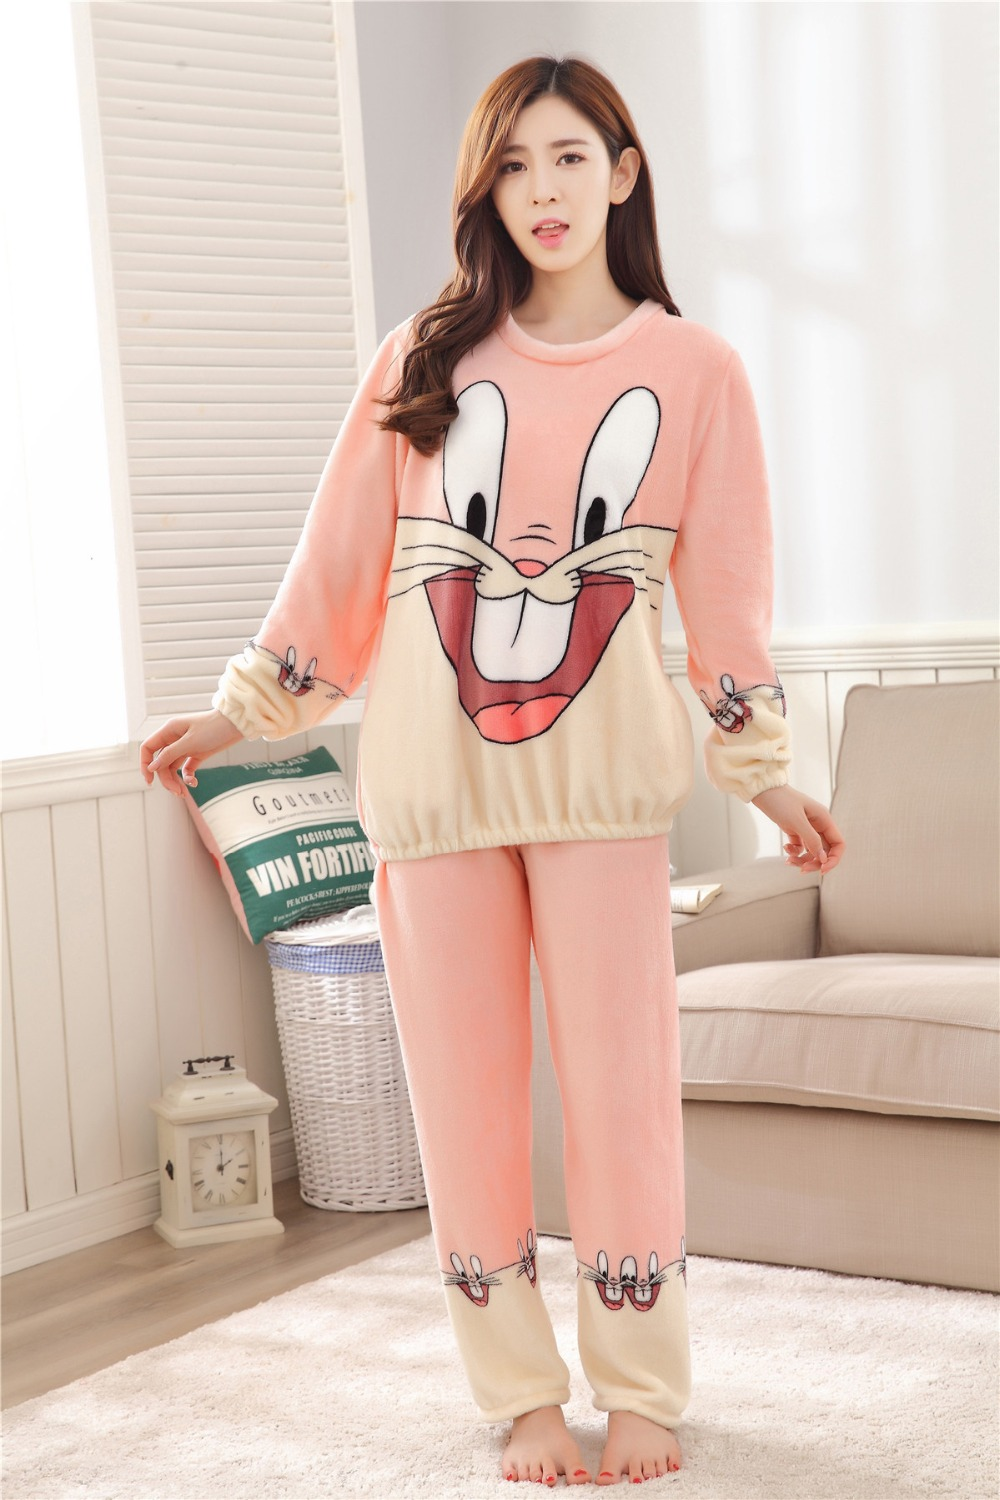 Women Pajamas Set For Autumn cute cartoon pink Women Clothes Sleepwear Nightgown For Women Long Sleeve And Pants Hot Sale pijama 55